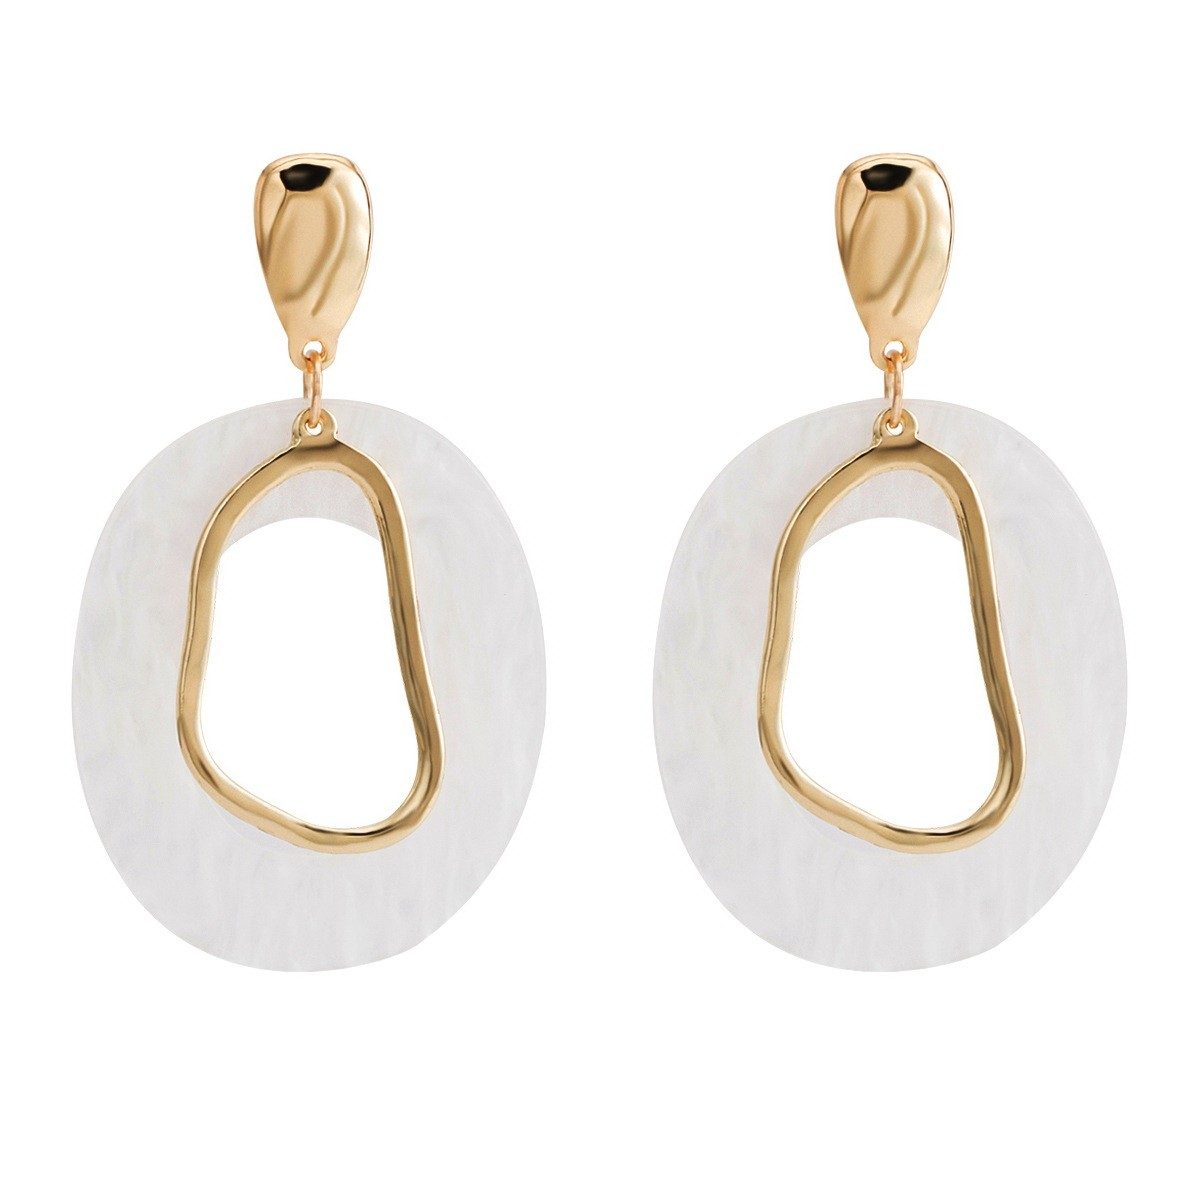 8051092b2 Big drop earrings studs white pearl and gold color parelmoer exclusive  online by www.axelles